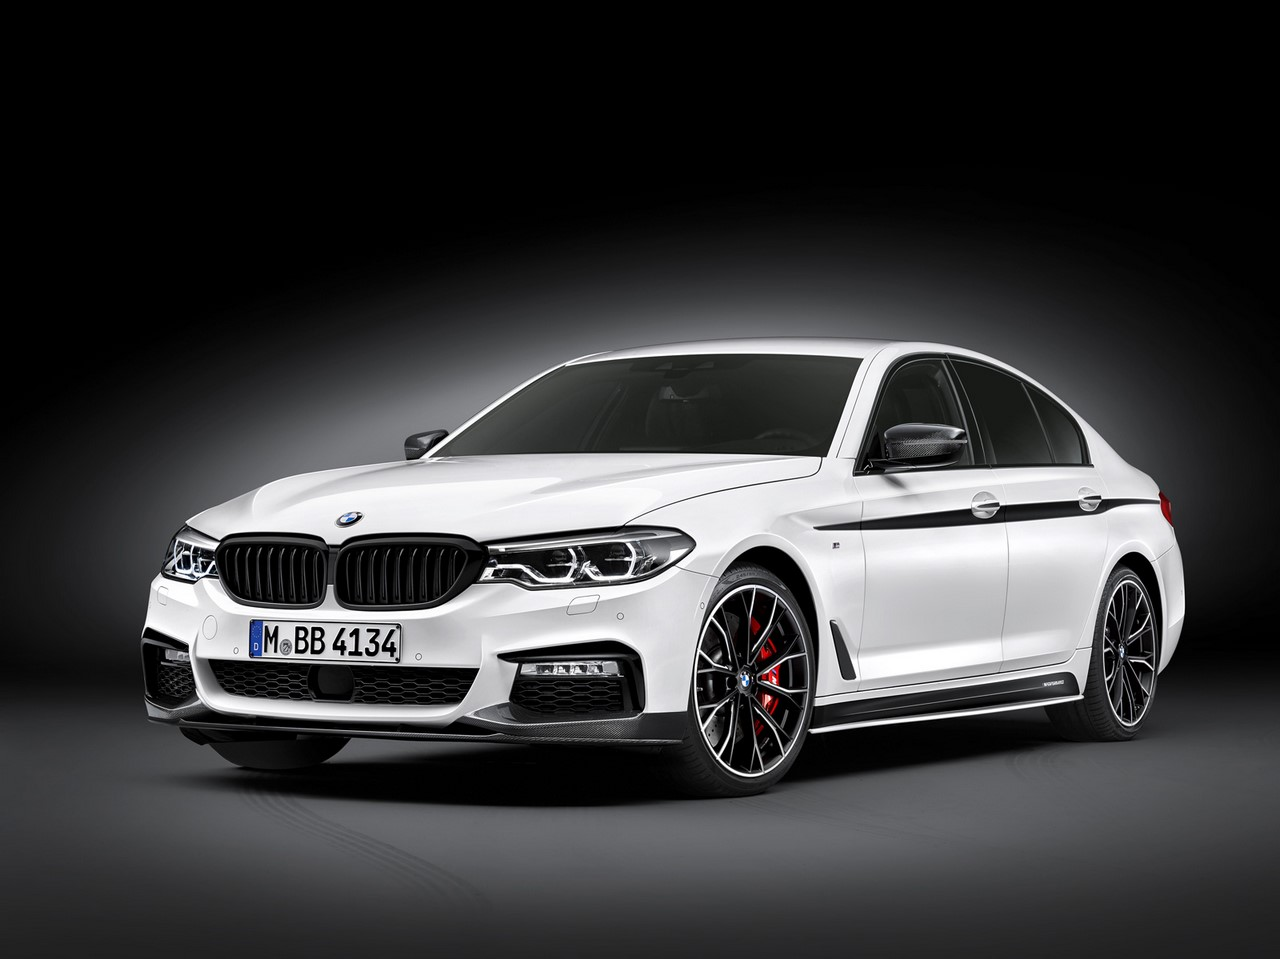 2017 BMW 5 Series BMW M Performance front three quarters